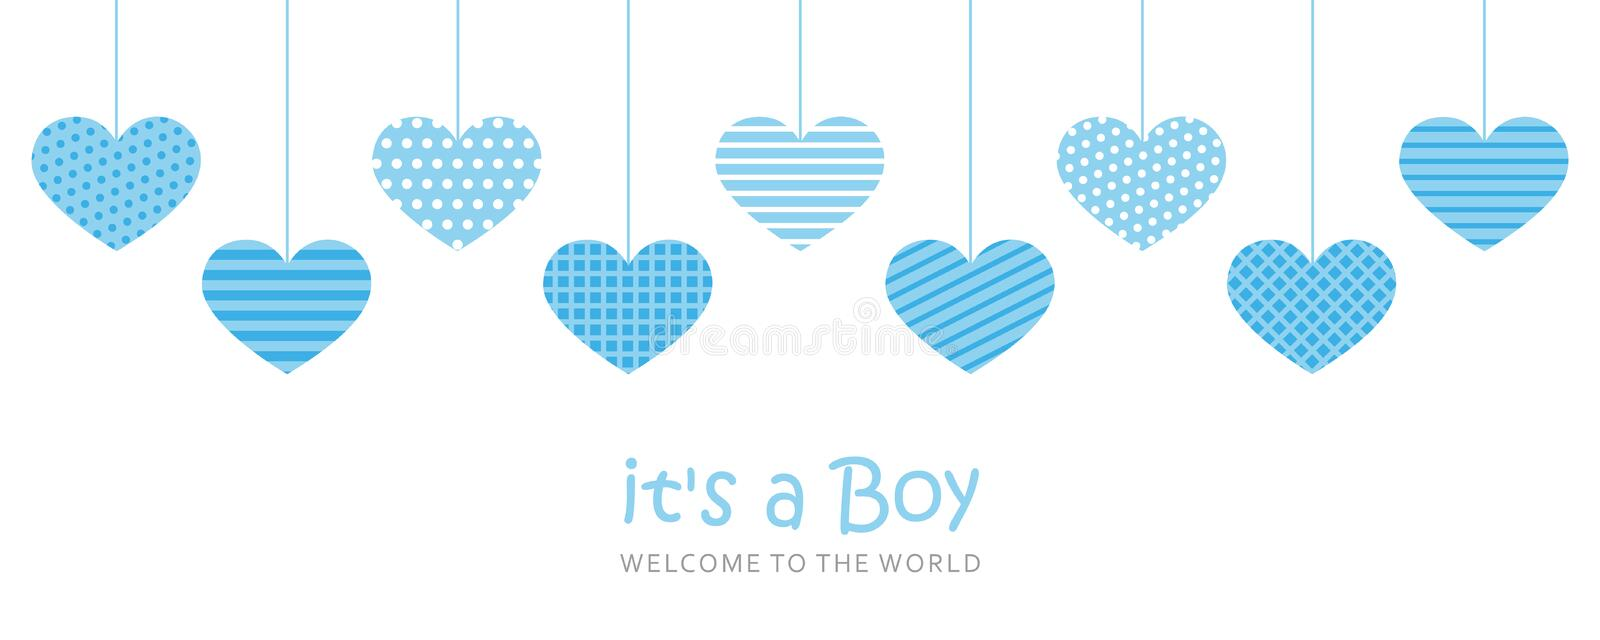 Its a boy welcome greeting card for childbirth with hanging hearts. Vector illustration EPS10 royalty free illustration